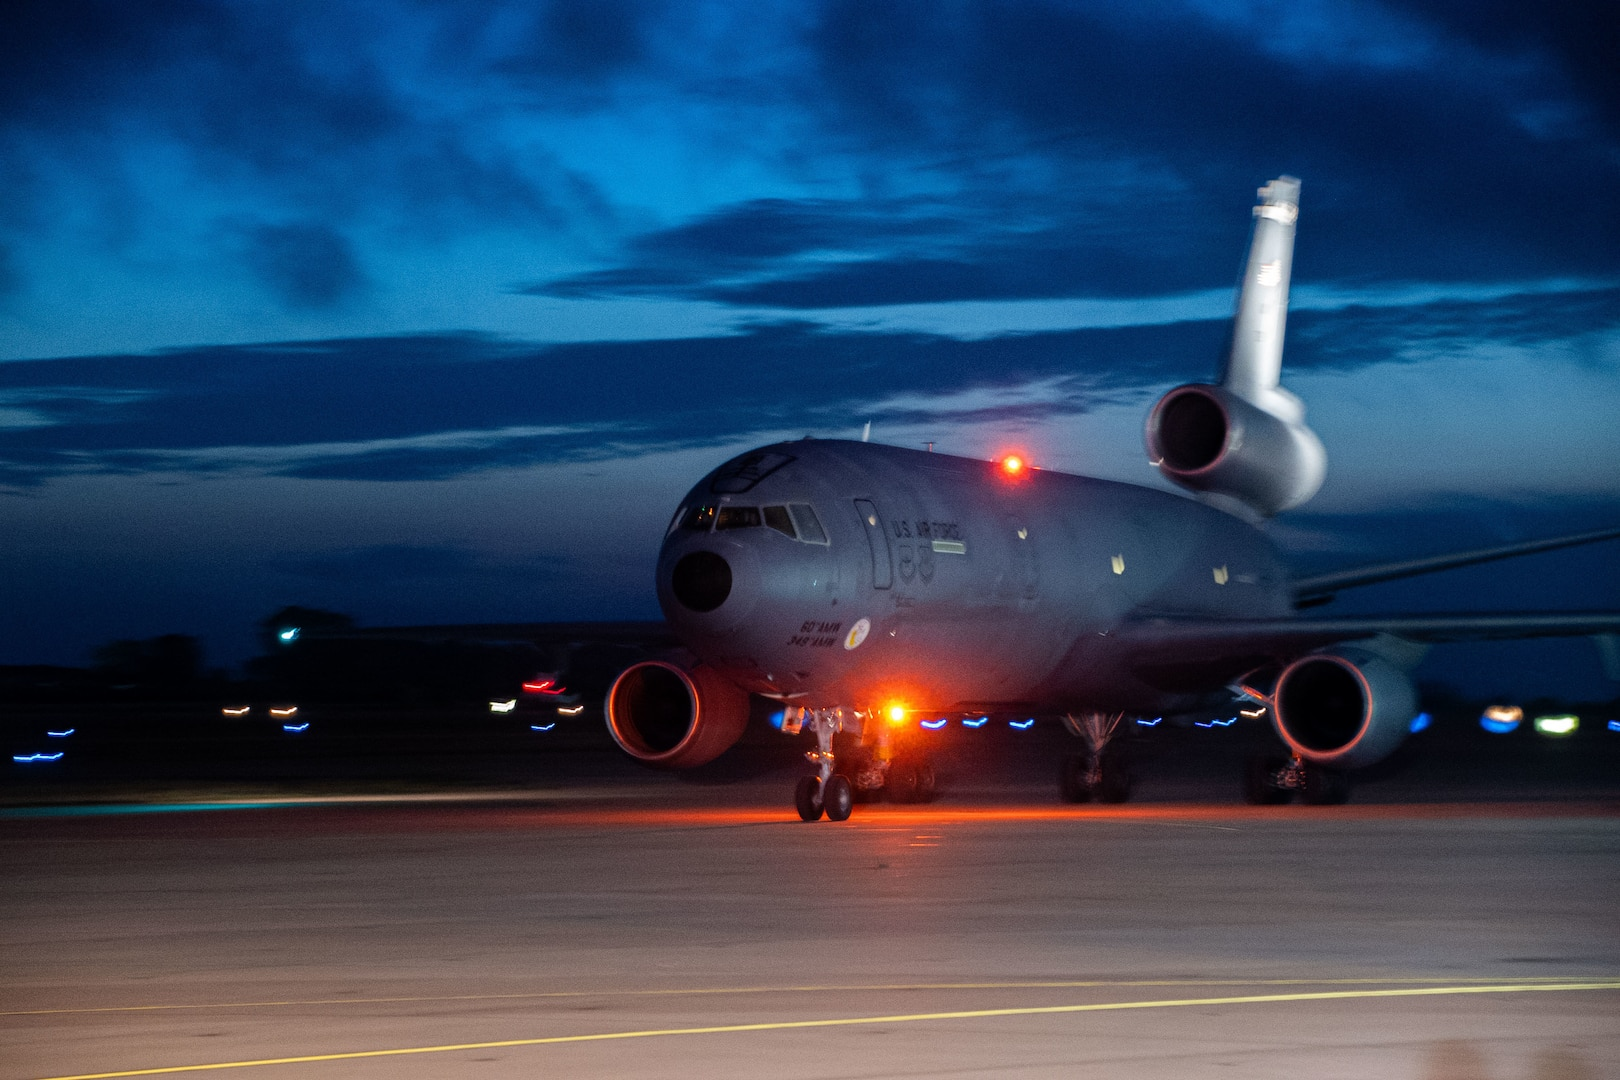 A U.S. Air Force KC-10 Extender lands at Naval Station (NAVSTA) Rota carrying evacuees from Afghanistan, Sept. 1, 2021.